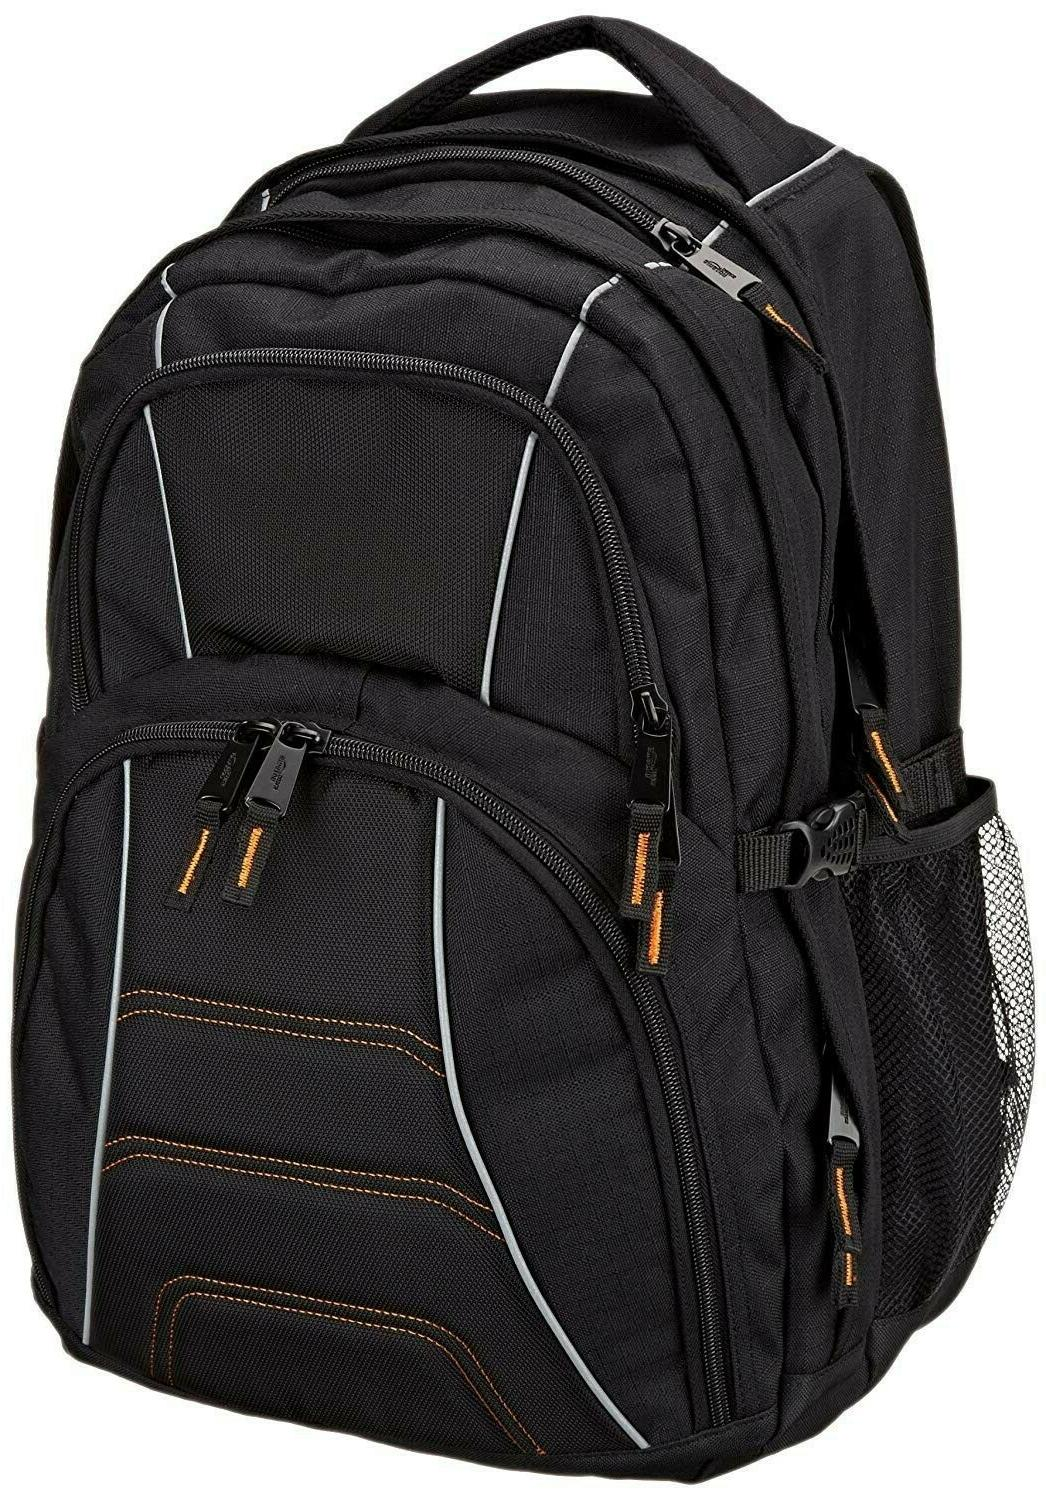 laptop computer backpack fits up to 17